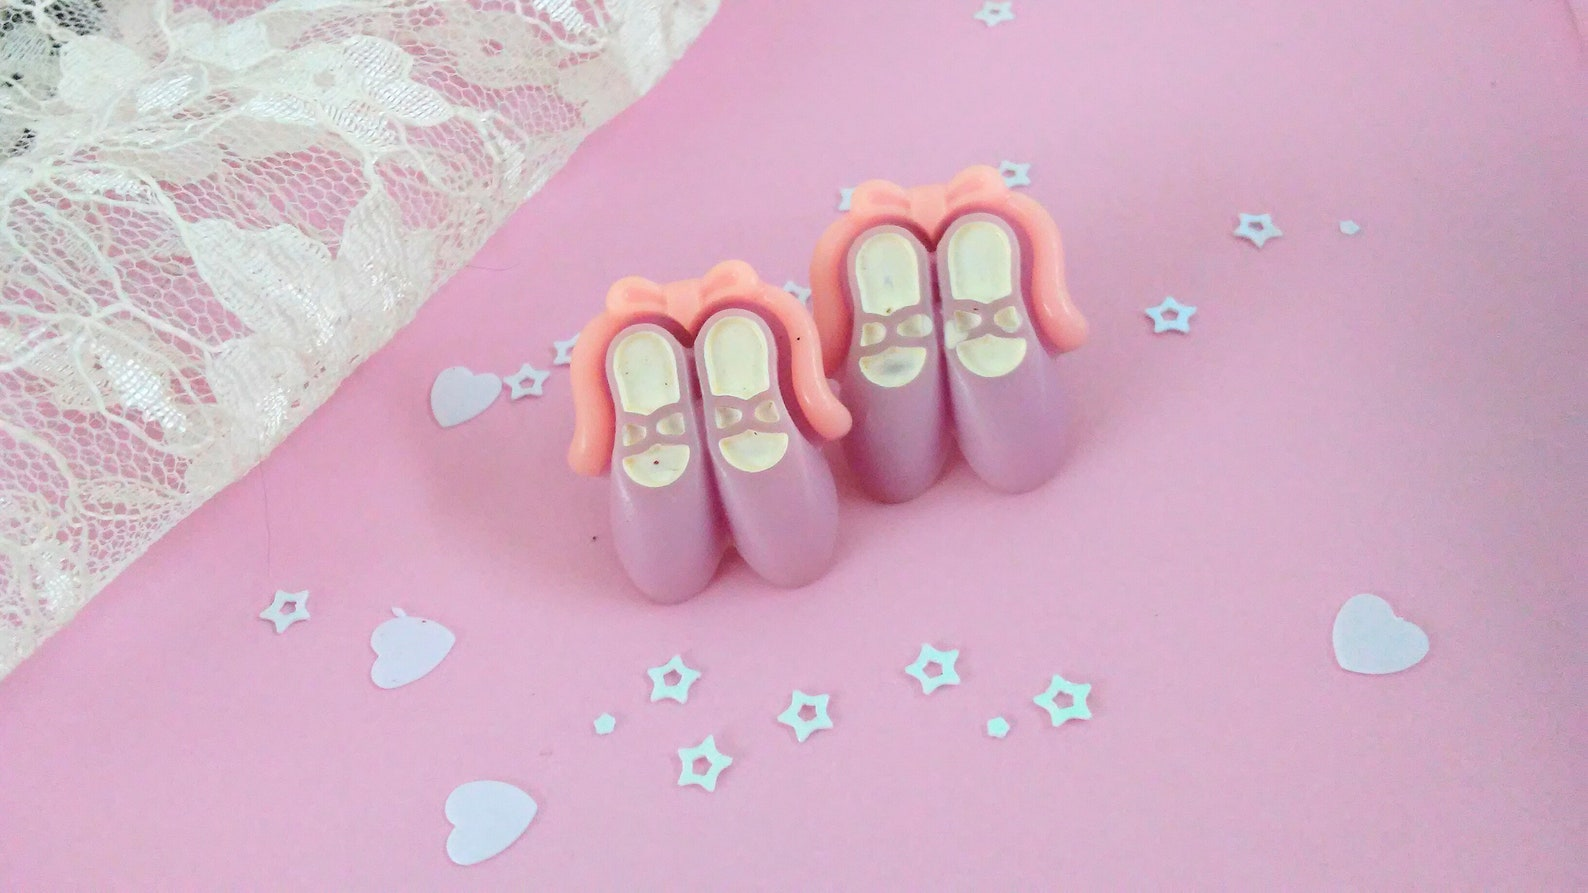 kawaii earrings - ballerina dancer jewelry - pastel kawaii - little girl - gift for dancer - ballet shoes - resin jewelry - swee